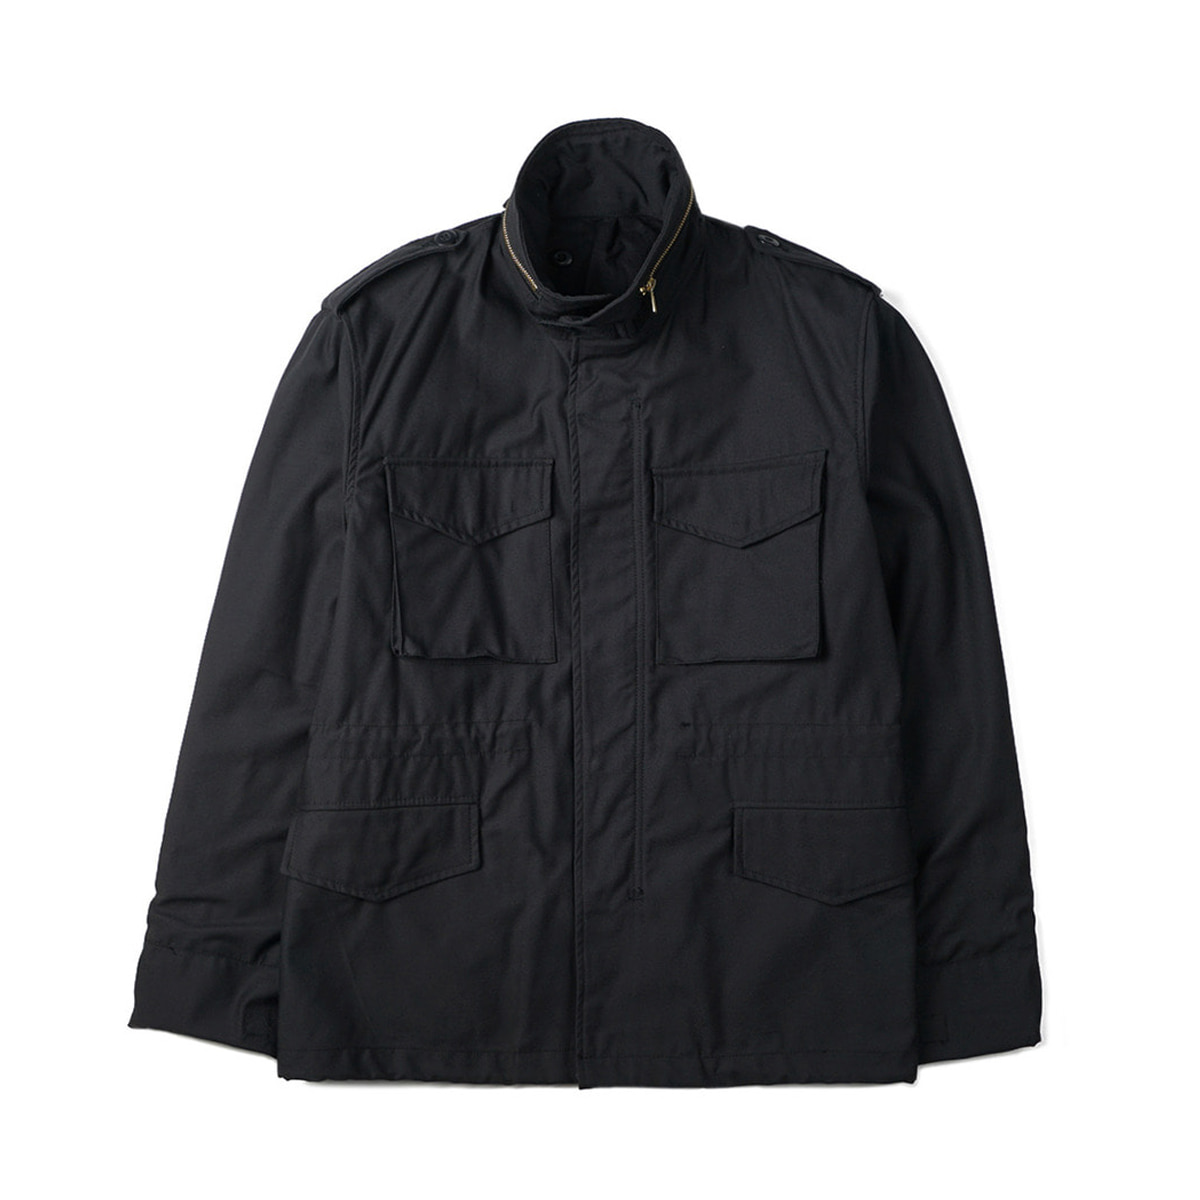 [YMCLKY] US TYPE M-65 FIELD JACKET 'BLACK'